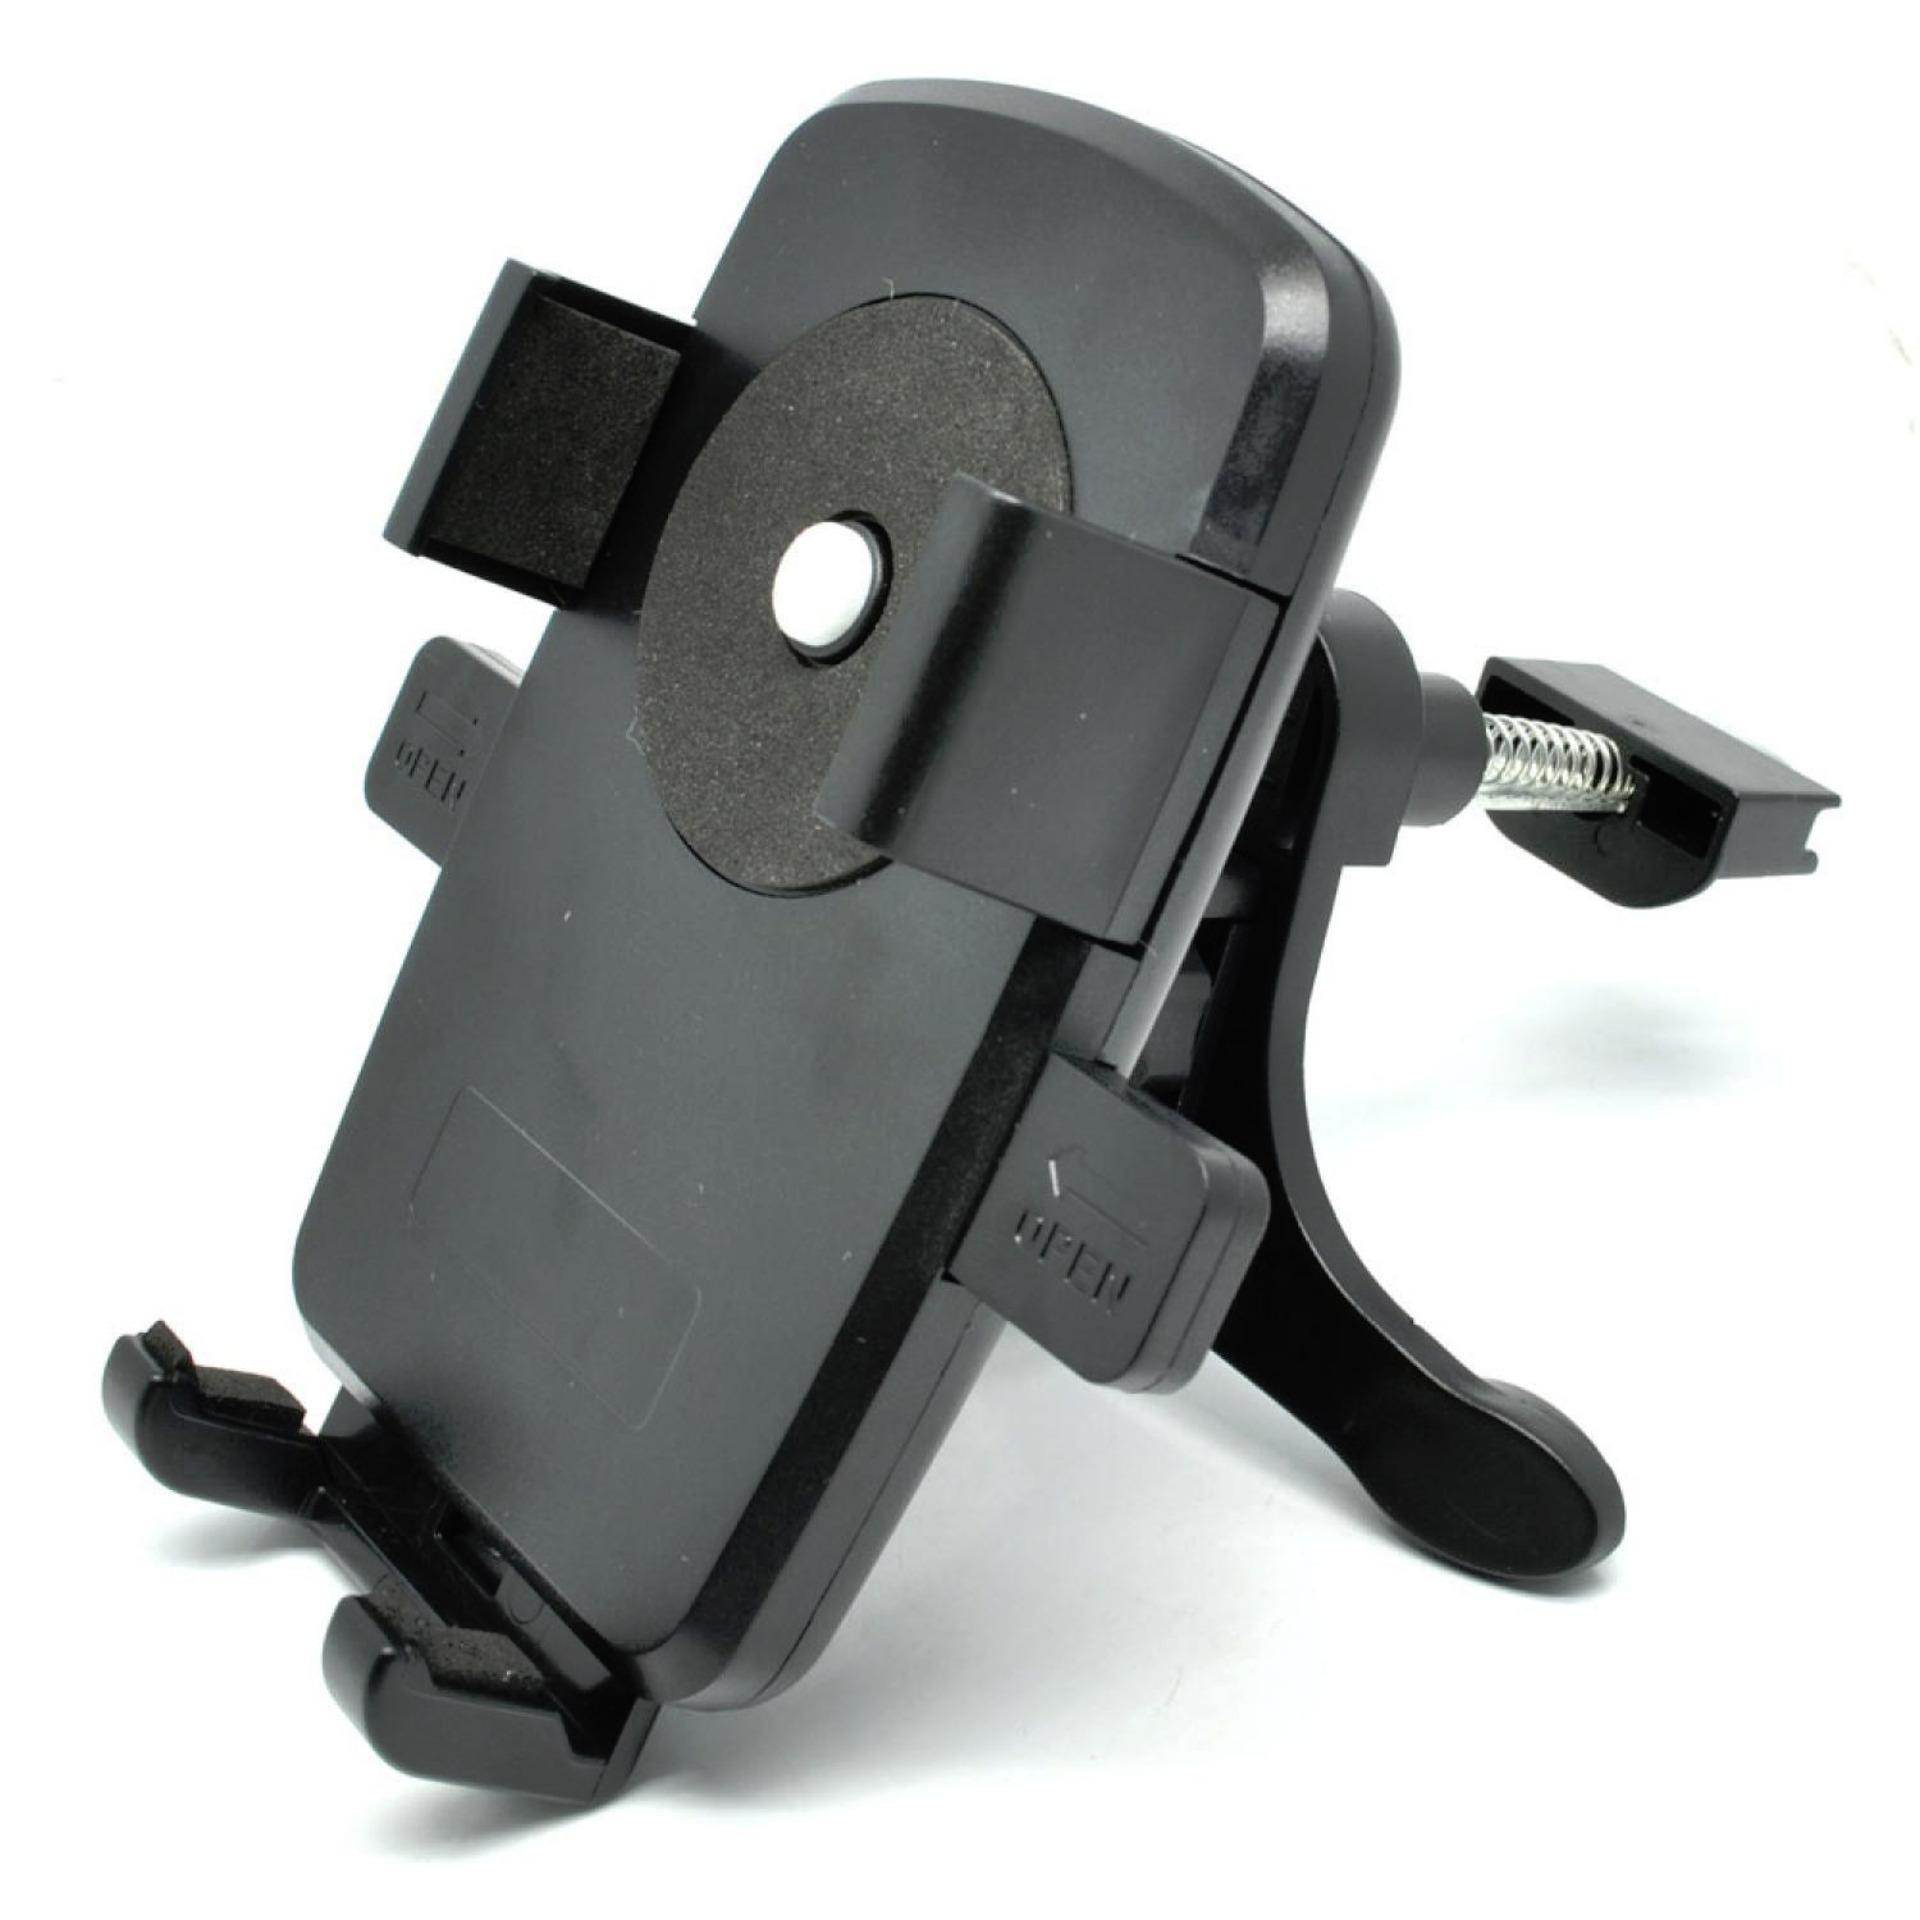 Spesifikasi Universal Mobile Phone Car Holder Air Vent Online